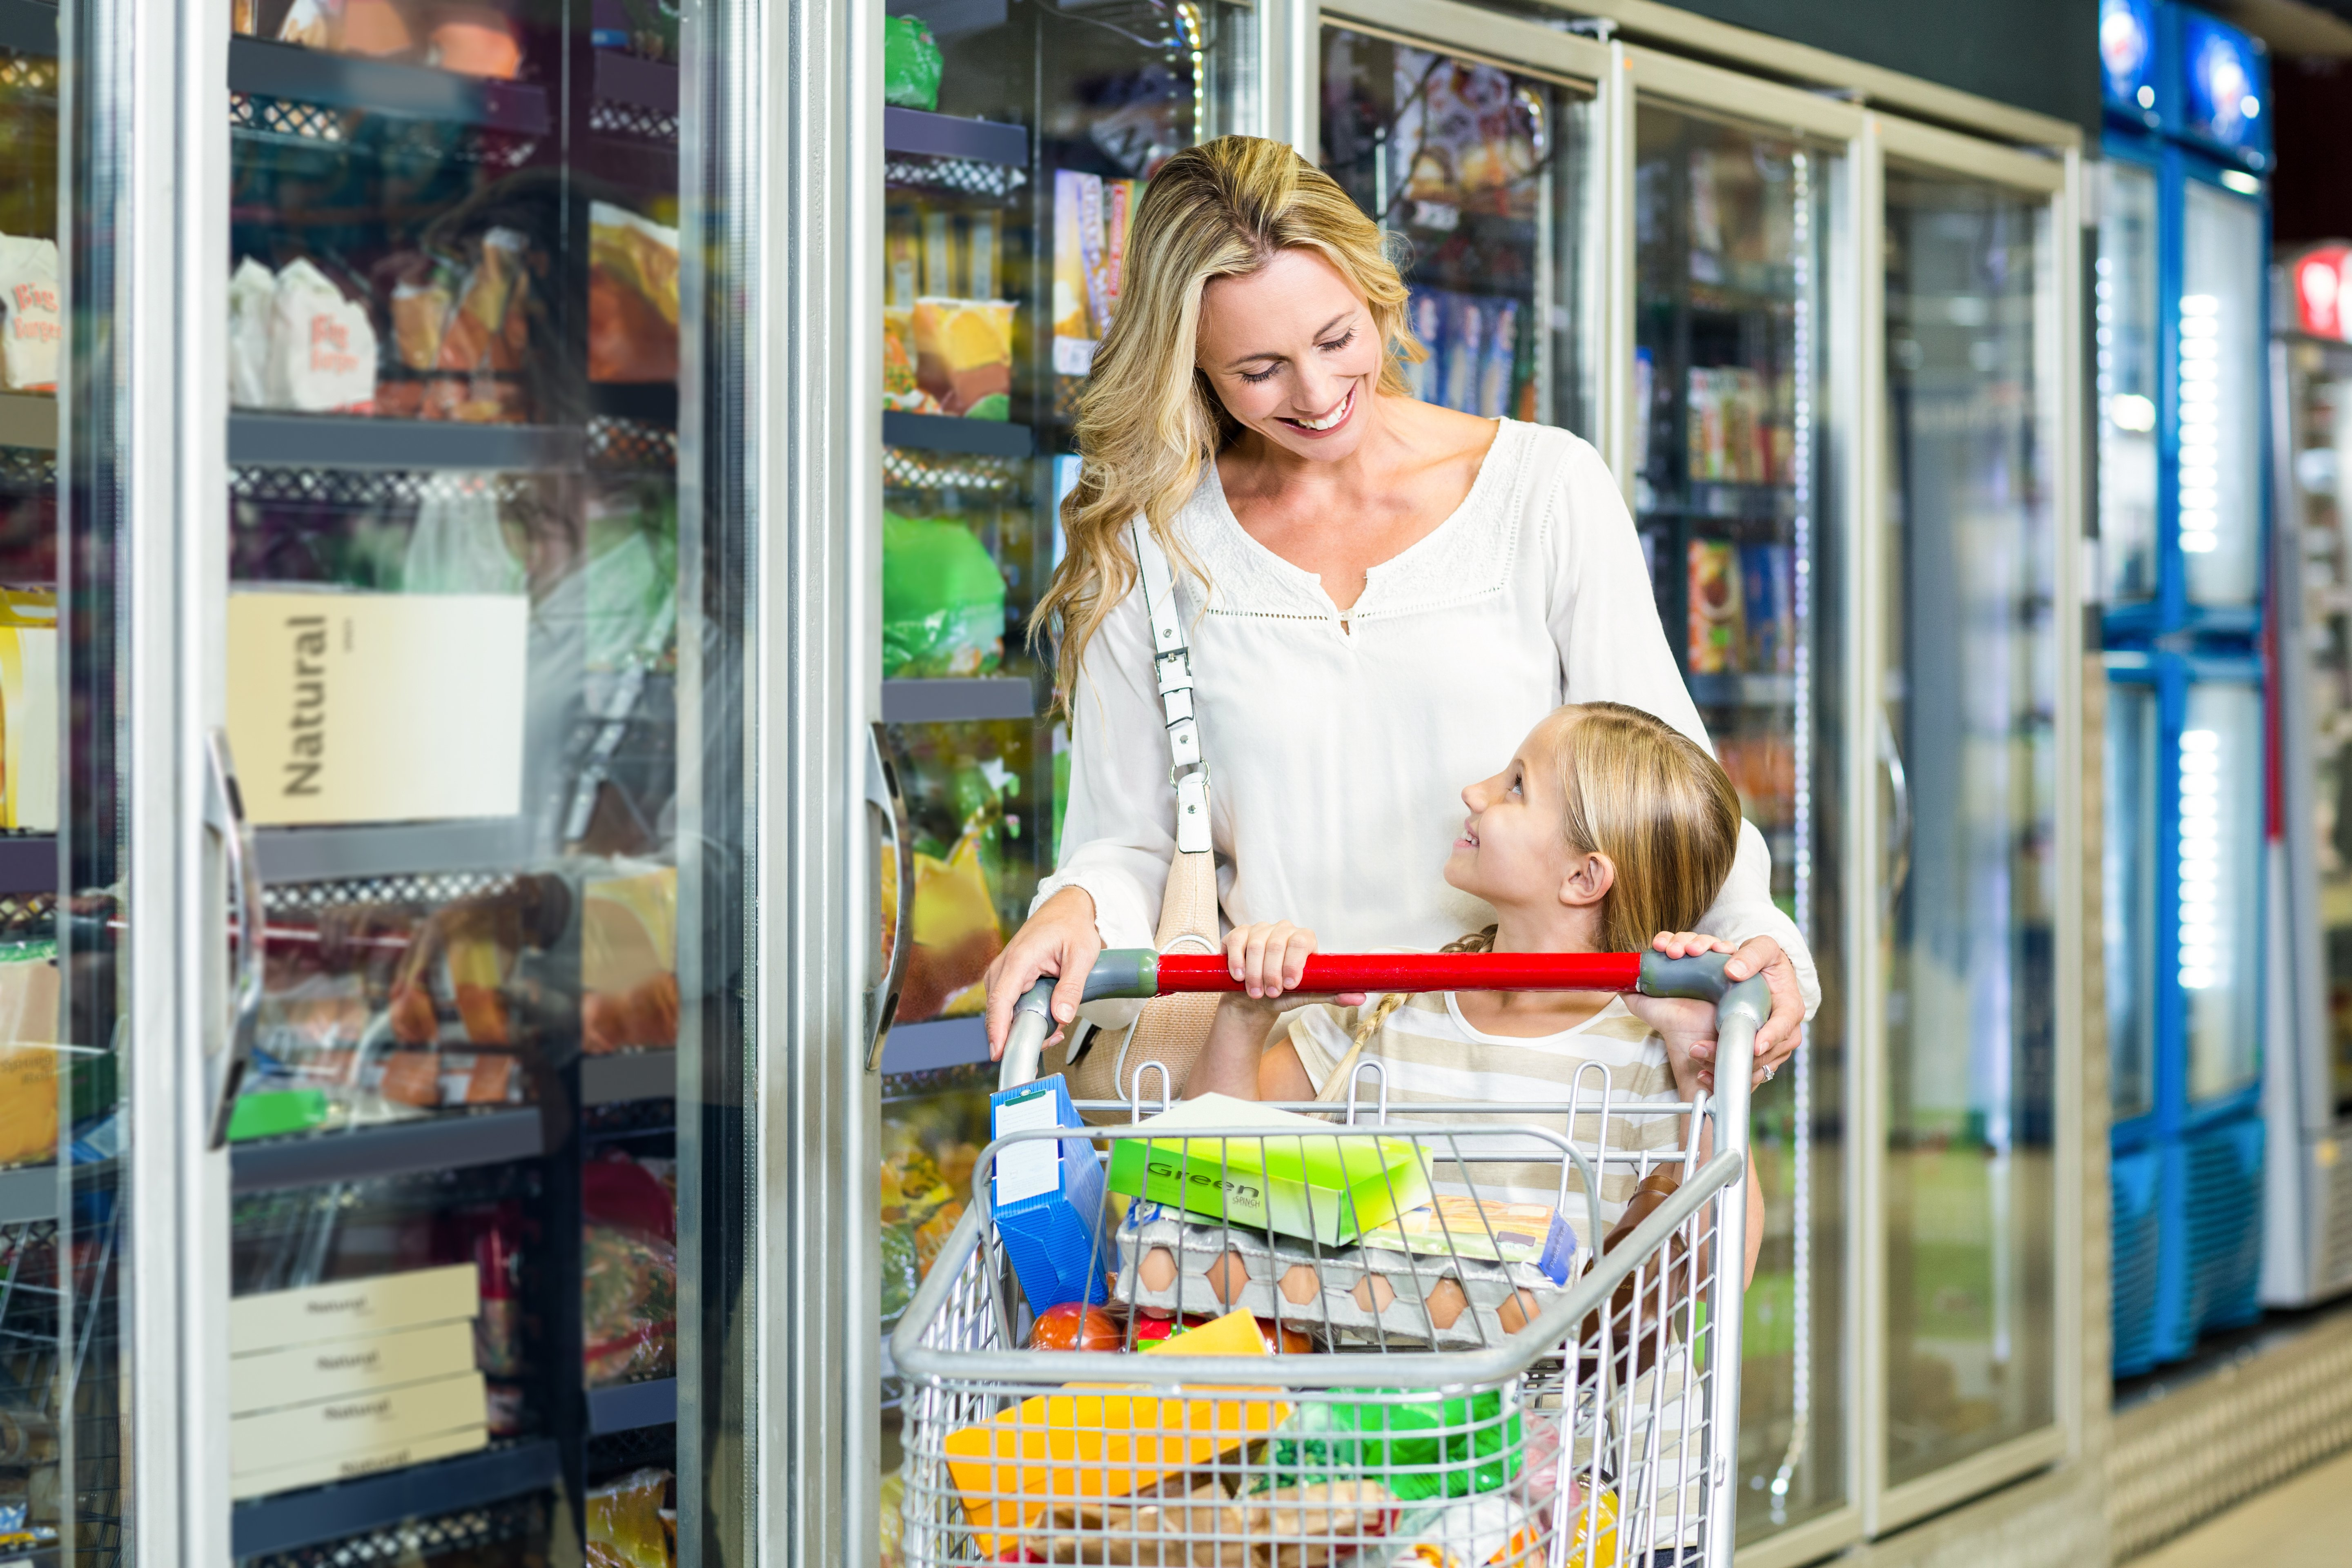 Lady out shopping with her son | Photo: Shutterstock